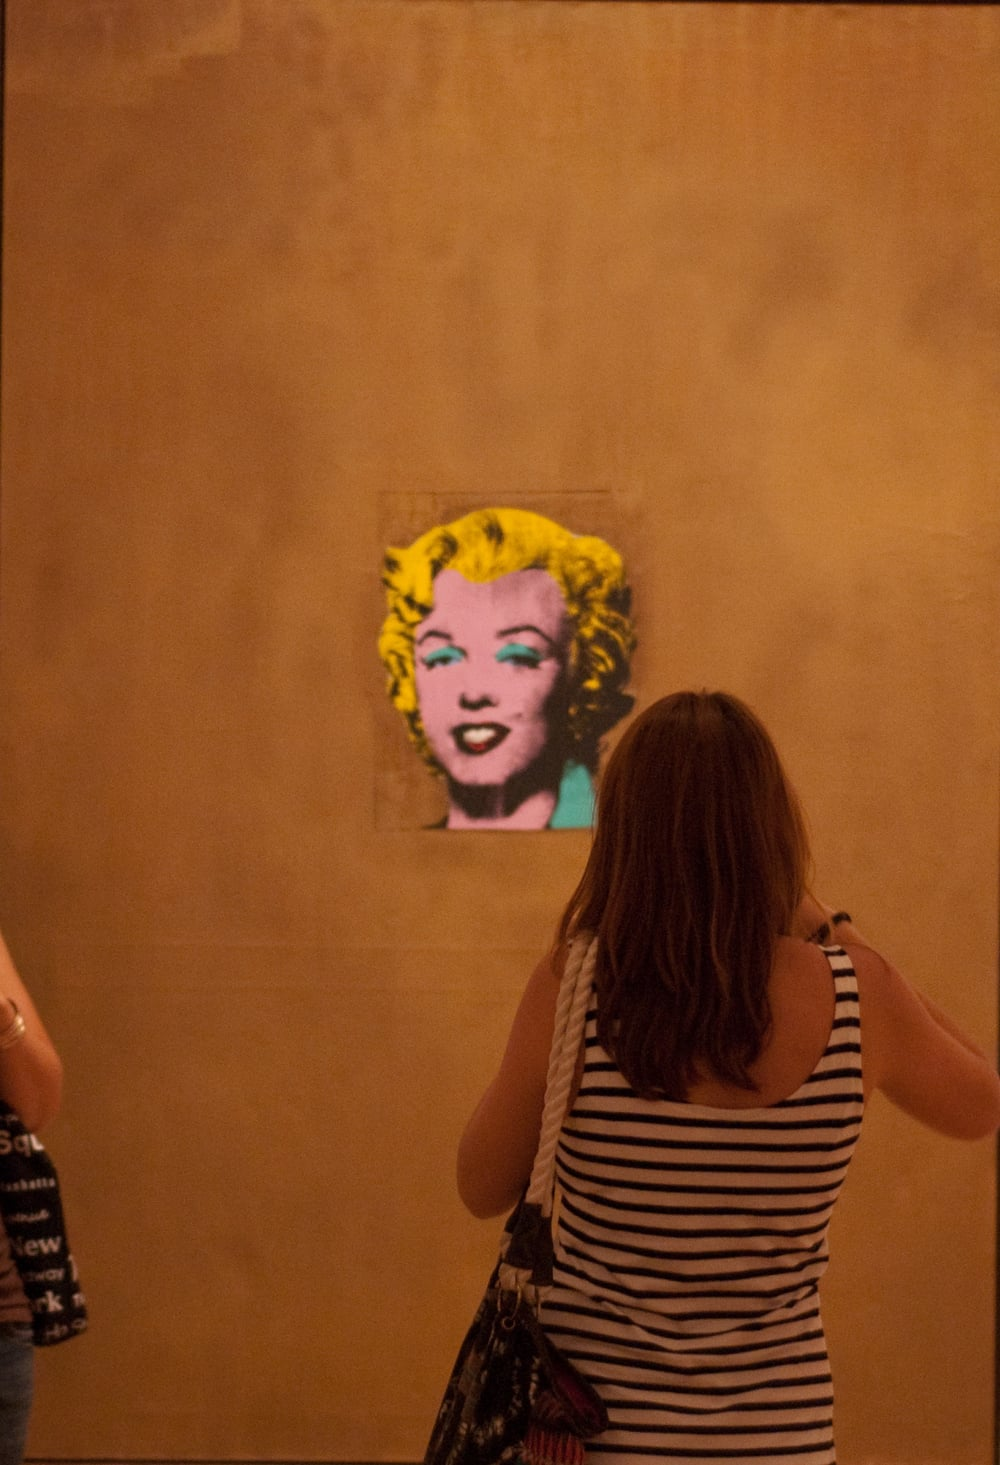 Lady Looking at Warhol 2010